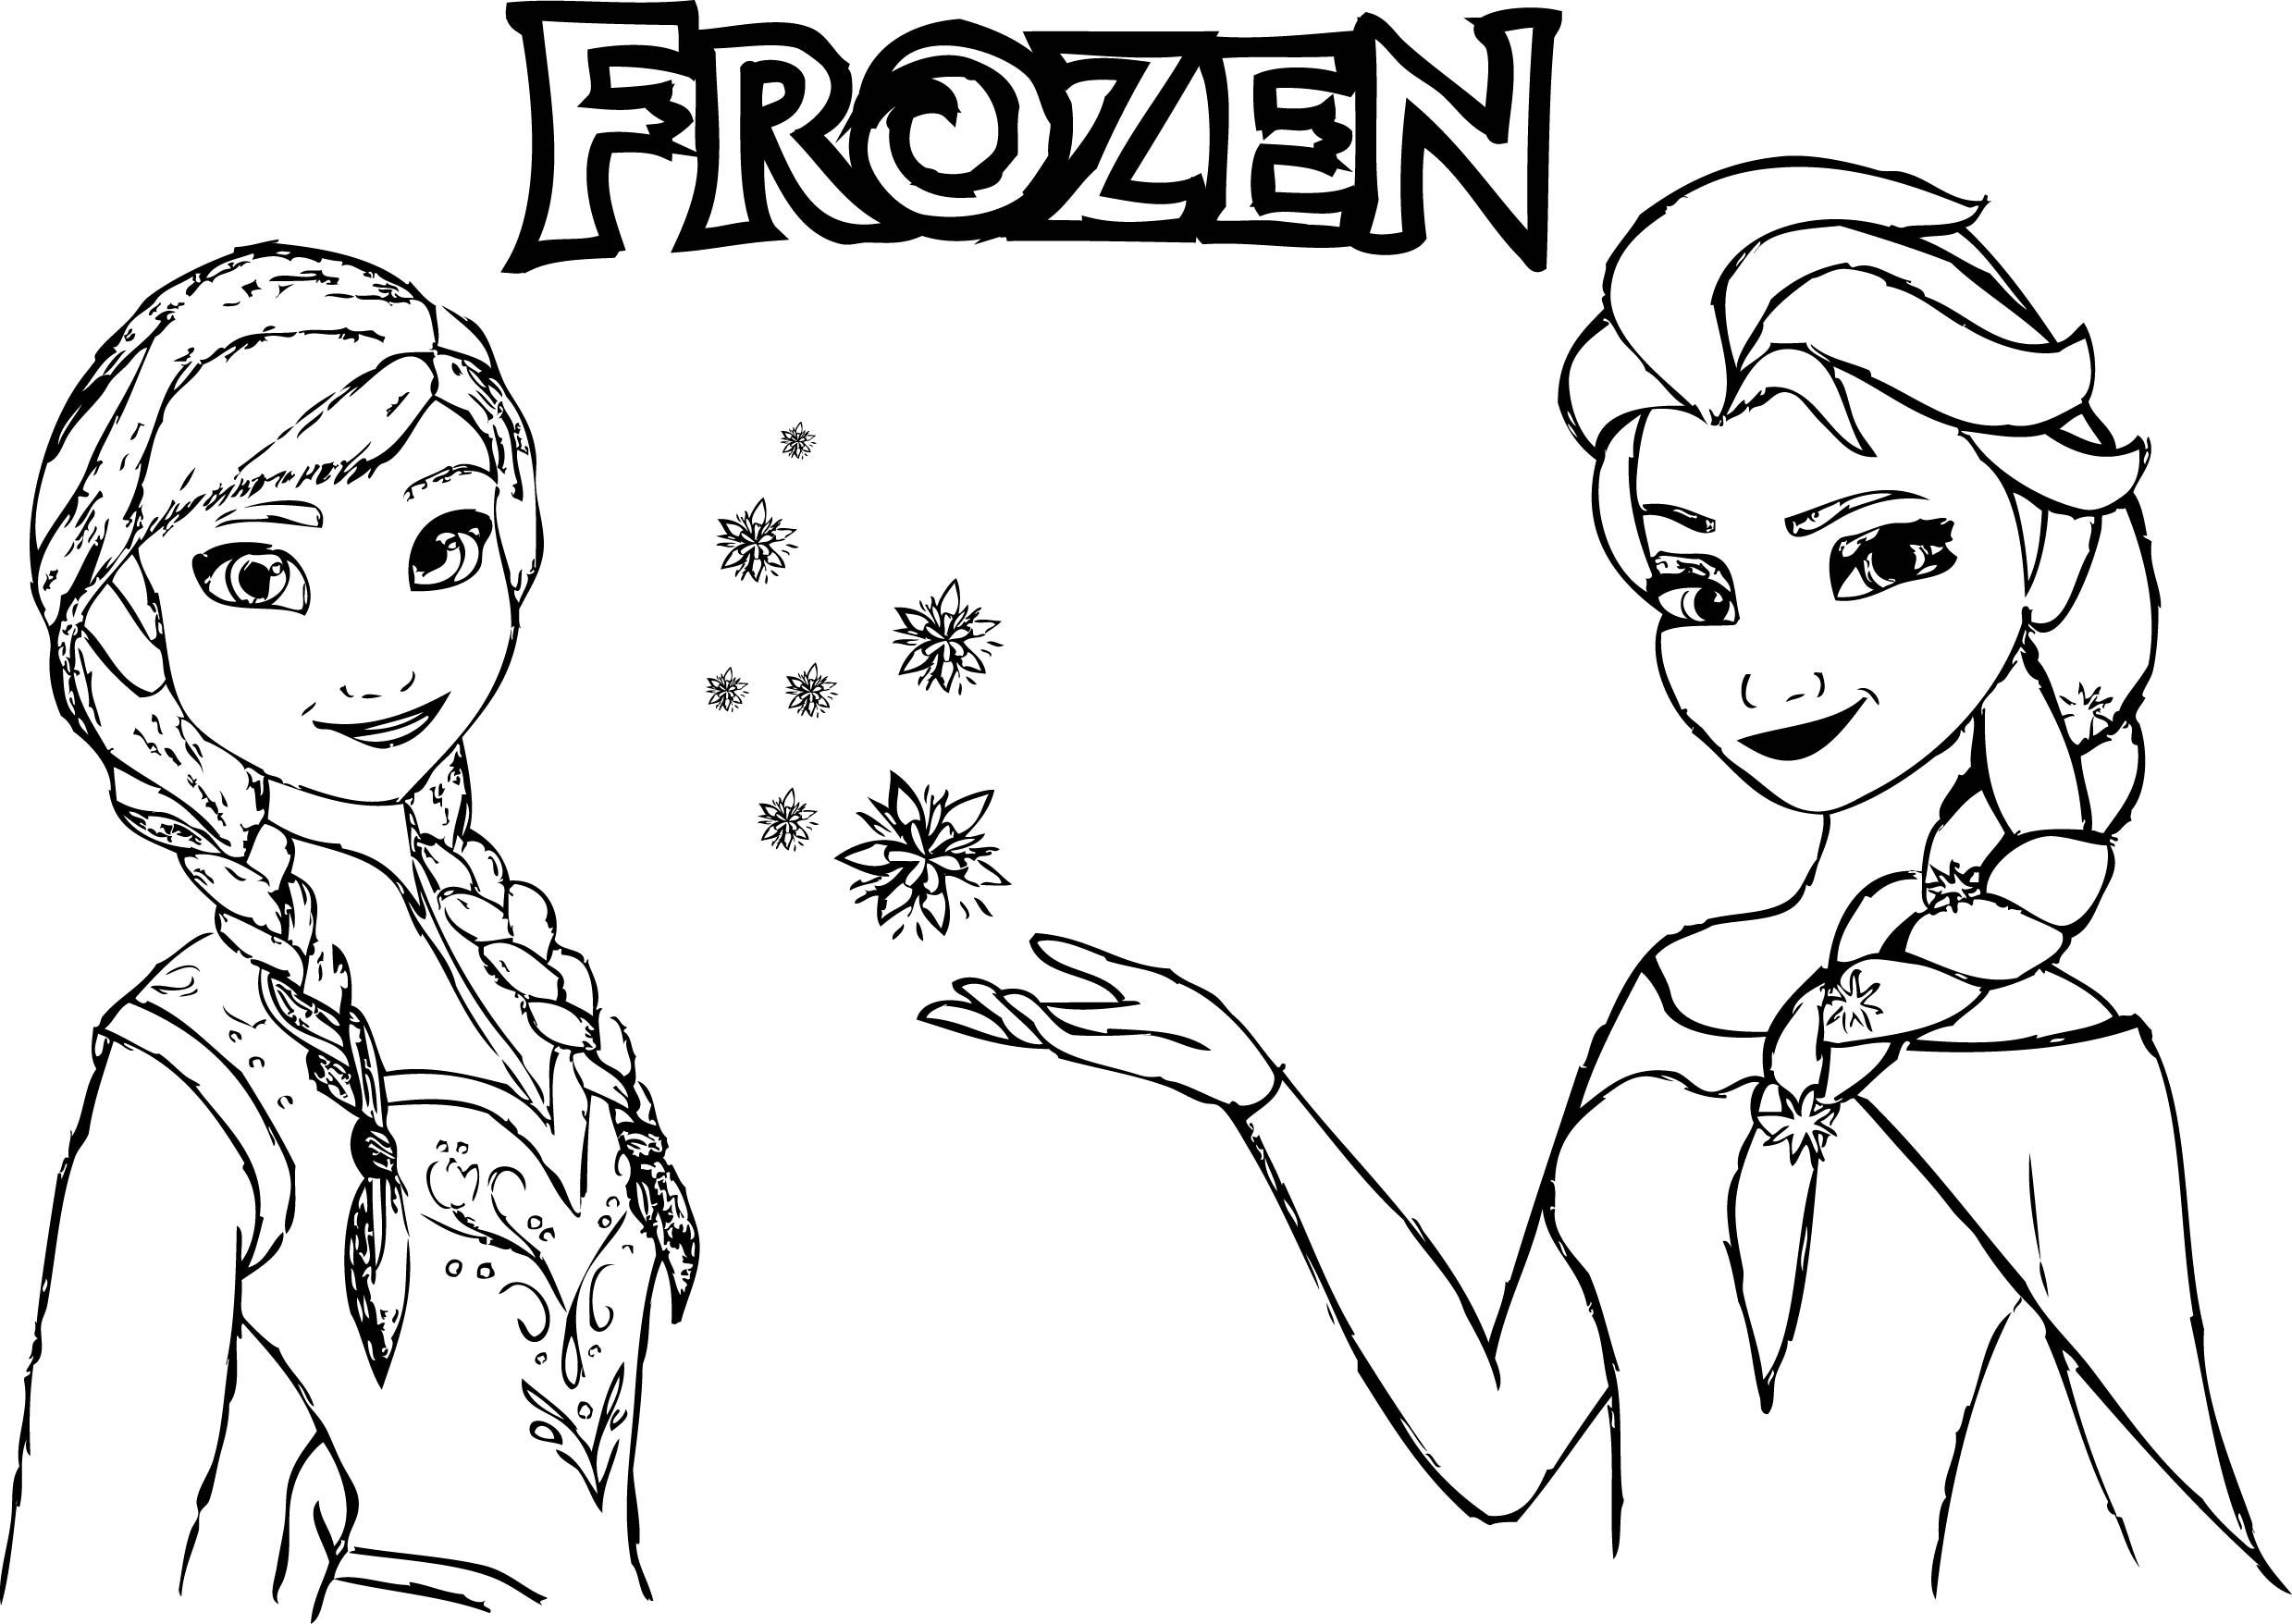 frozen anna elsa magic coloring page wecoloringpage pinterest